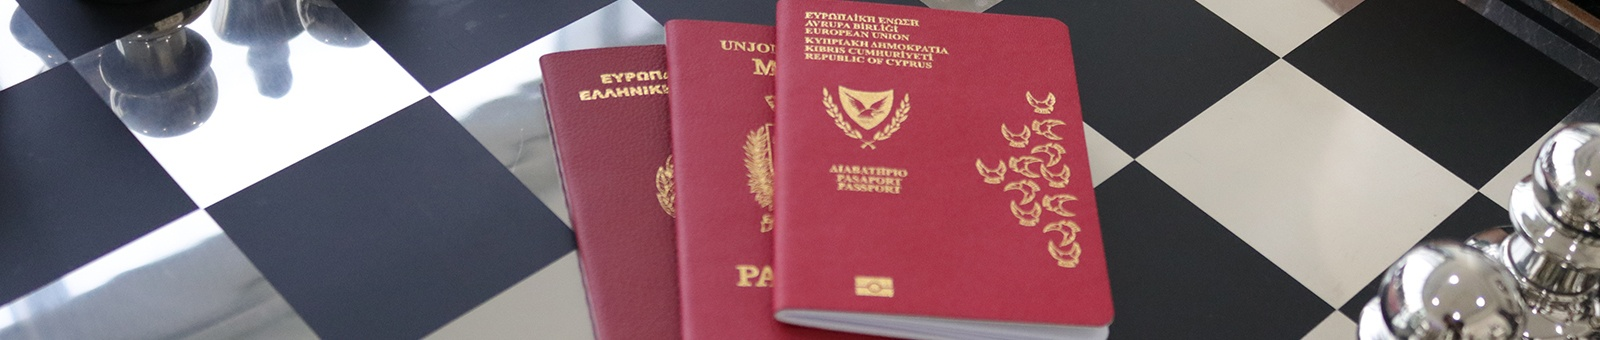 Want to Have Access to the Fast Route to European Trading? Here's Why EU Citizenship Is the Solution